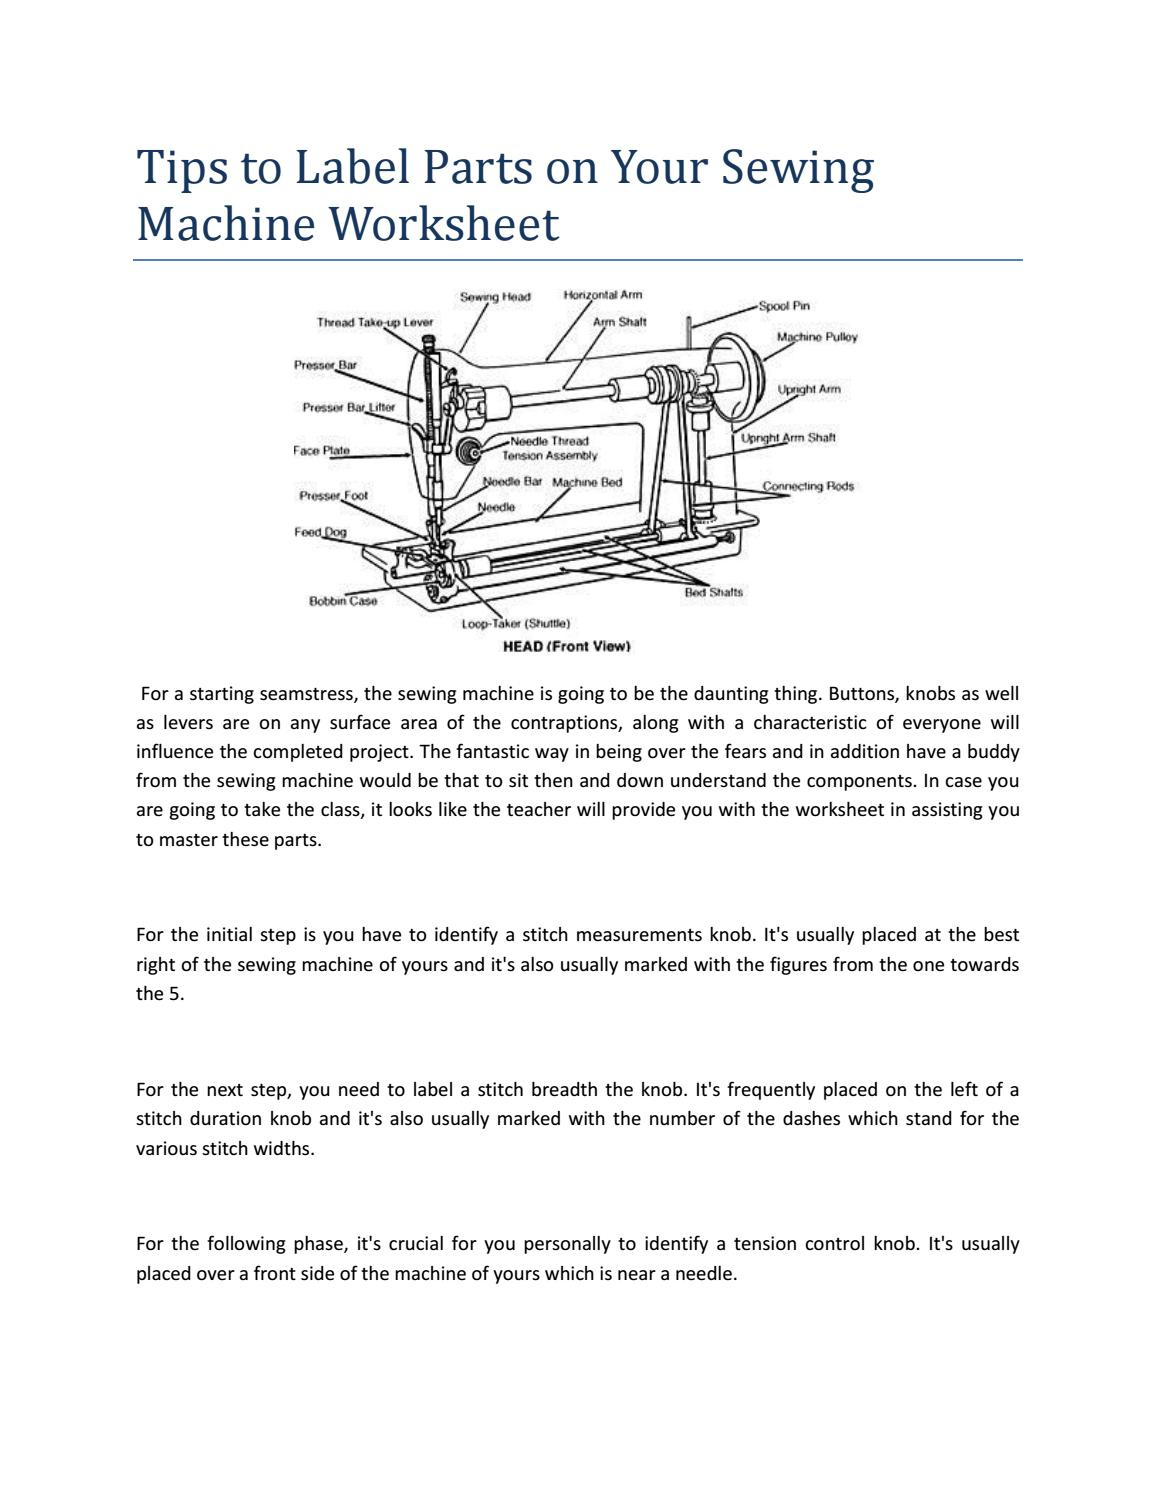 Parts Of A Sewing Machine by Dennis J. McPherson - issuu